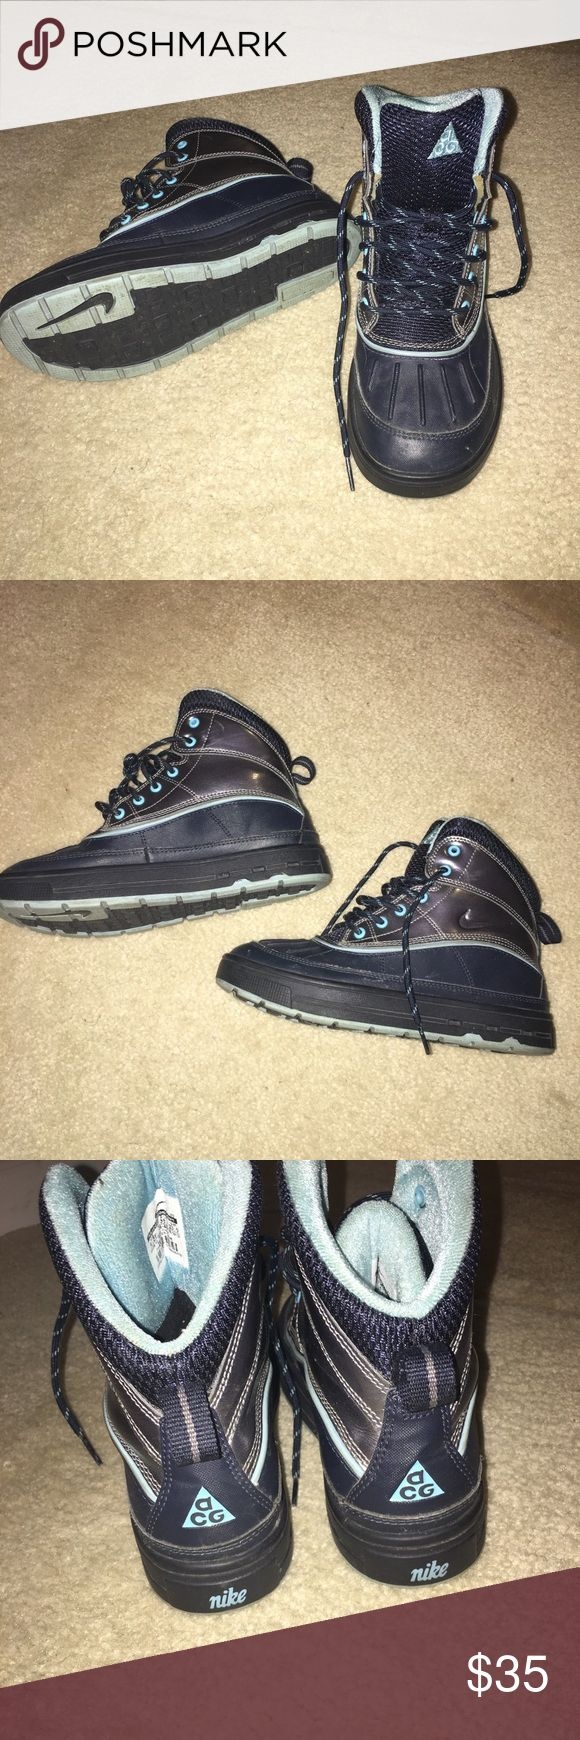 Nike ACG Boots Size 4.5y Preowned great condition Nike ACG Shoes Boots